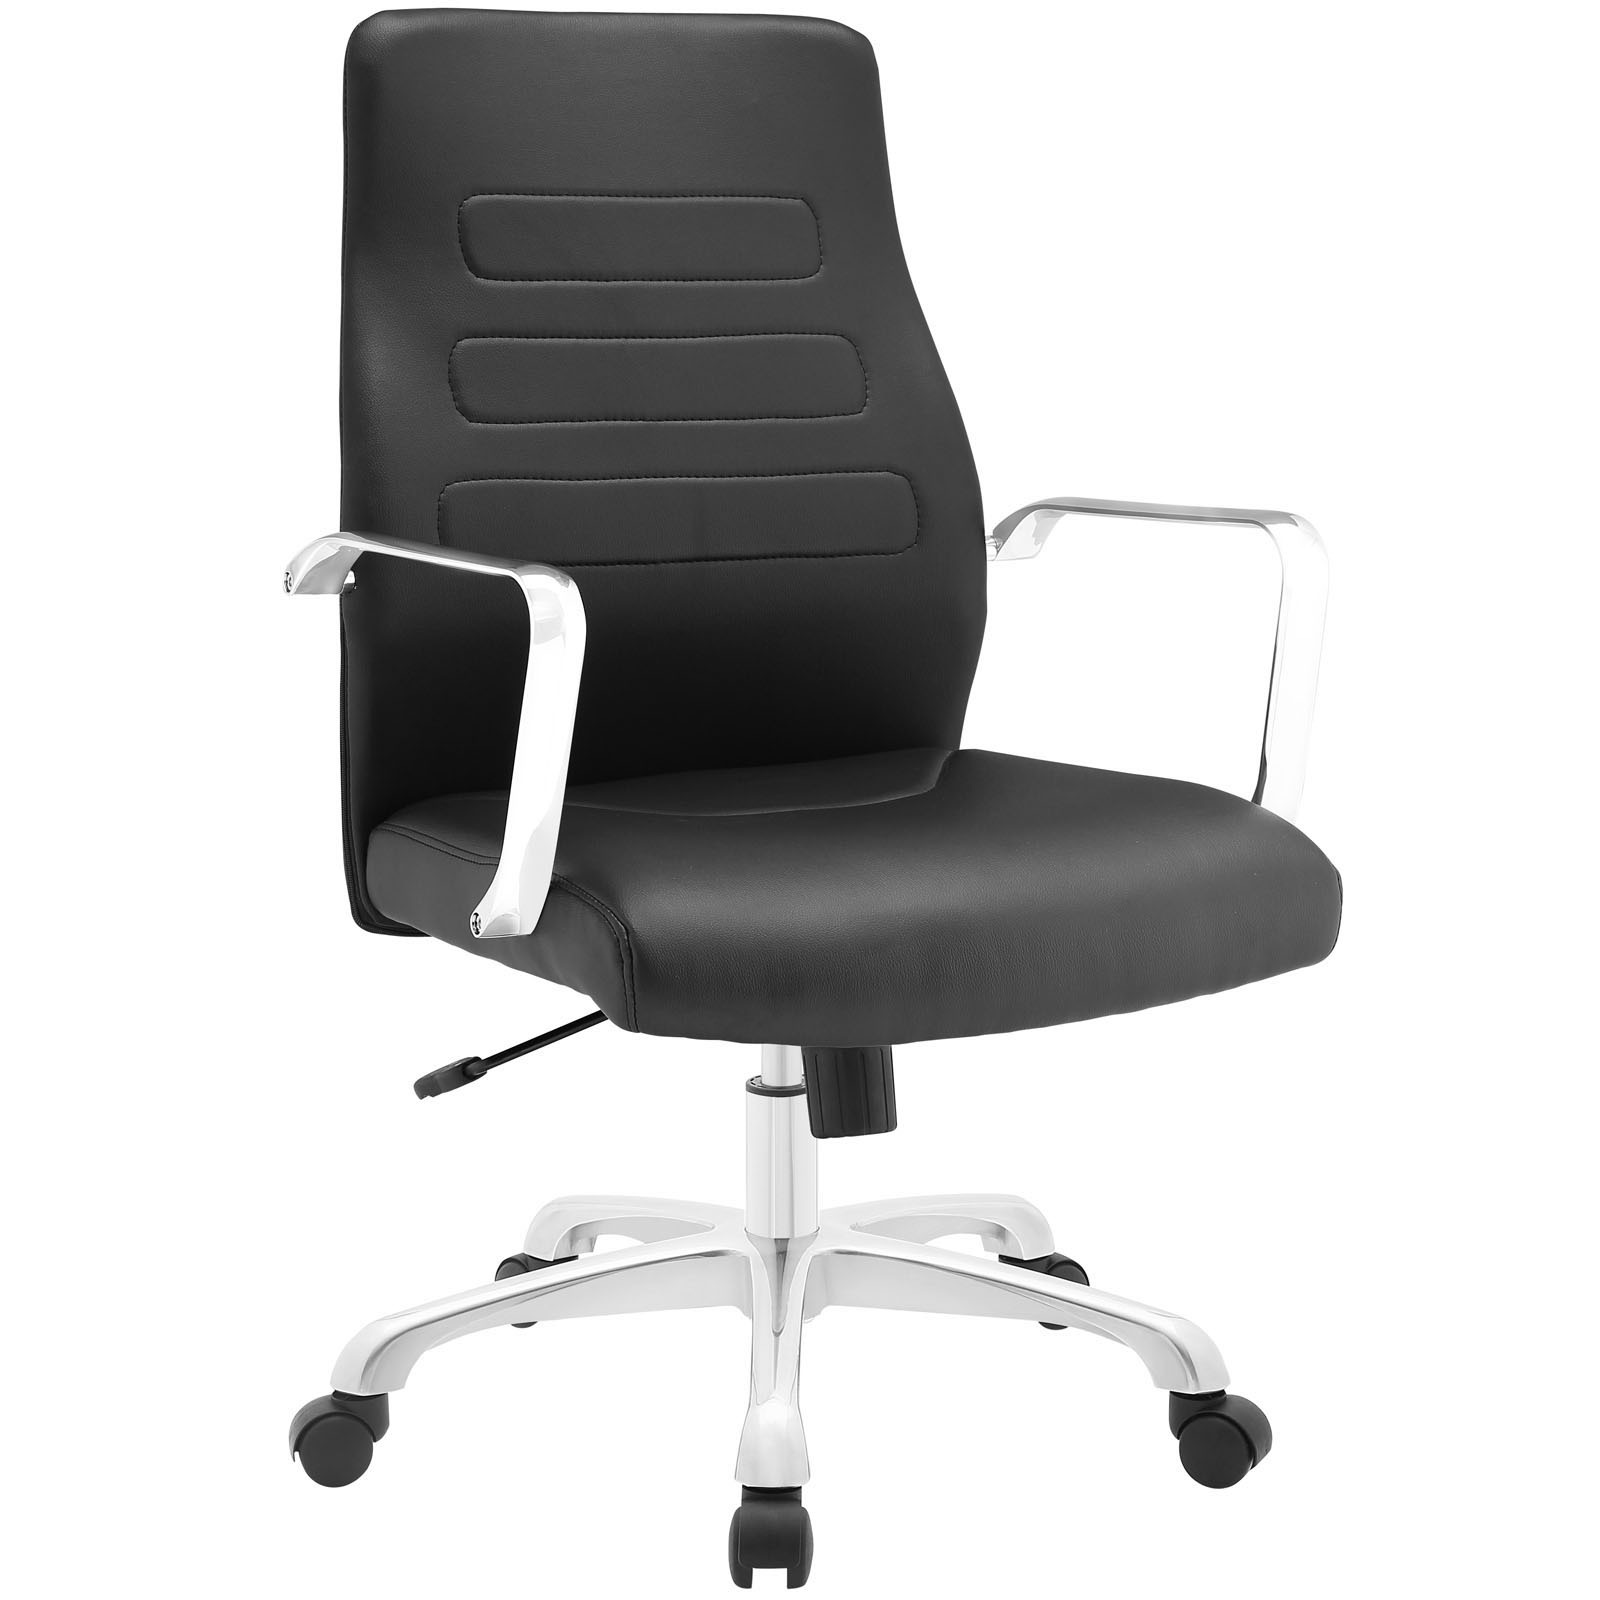 Cheap Chair Discount Chairs Office Furniture Chairs